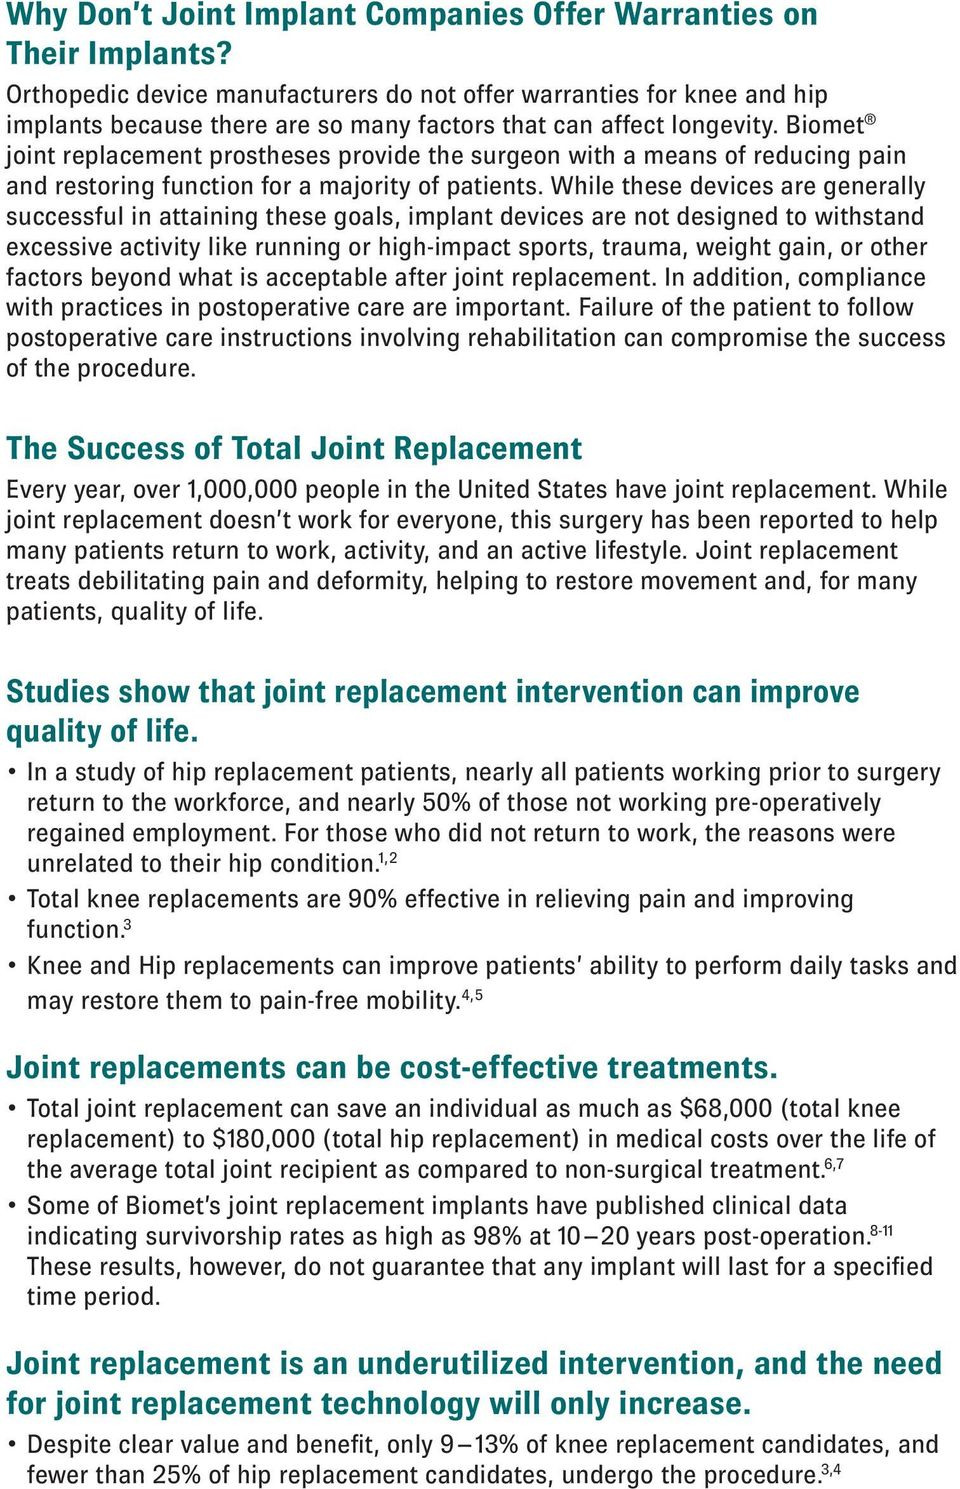 Biomet joint replacement prostheses provide the surgeon with a means of reducing pain and restoring function for a majority of patients.